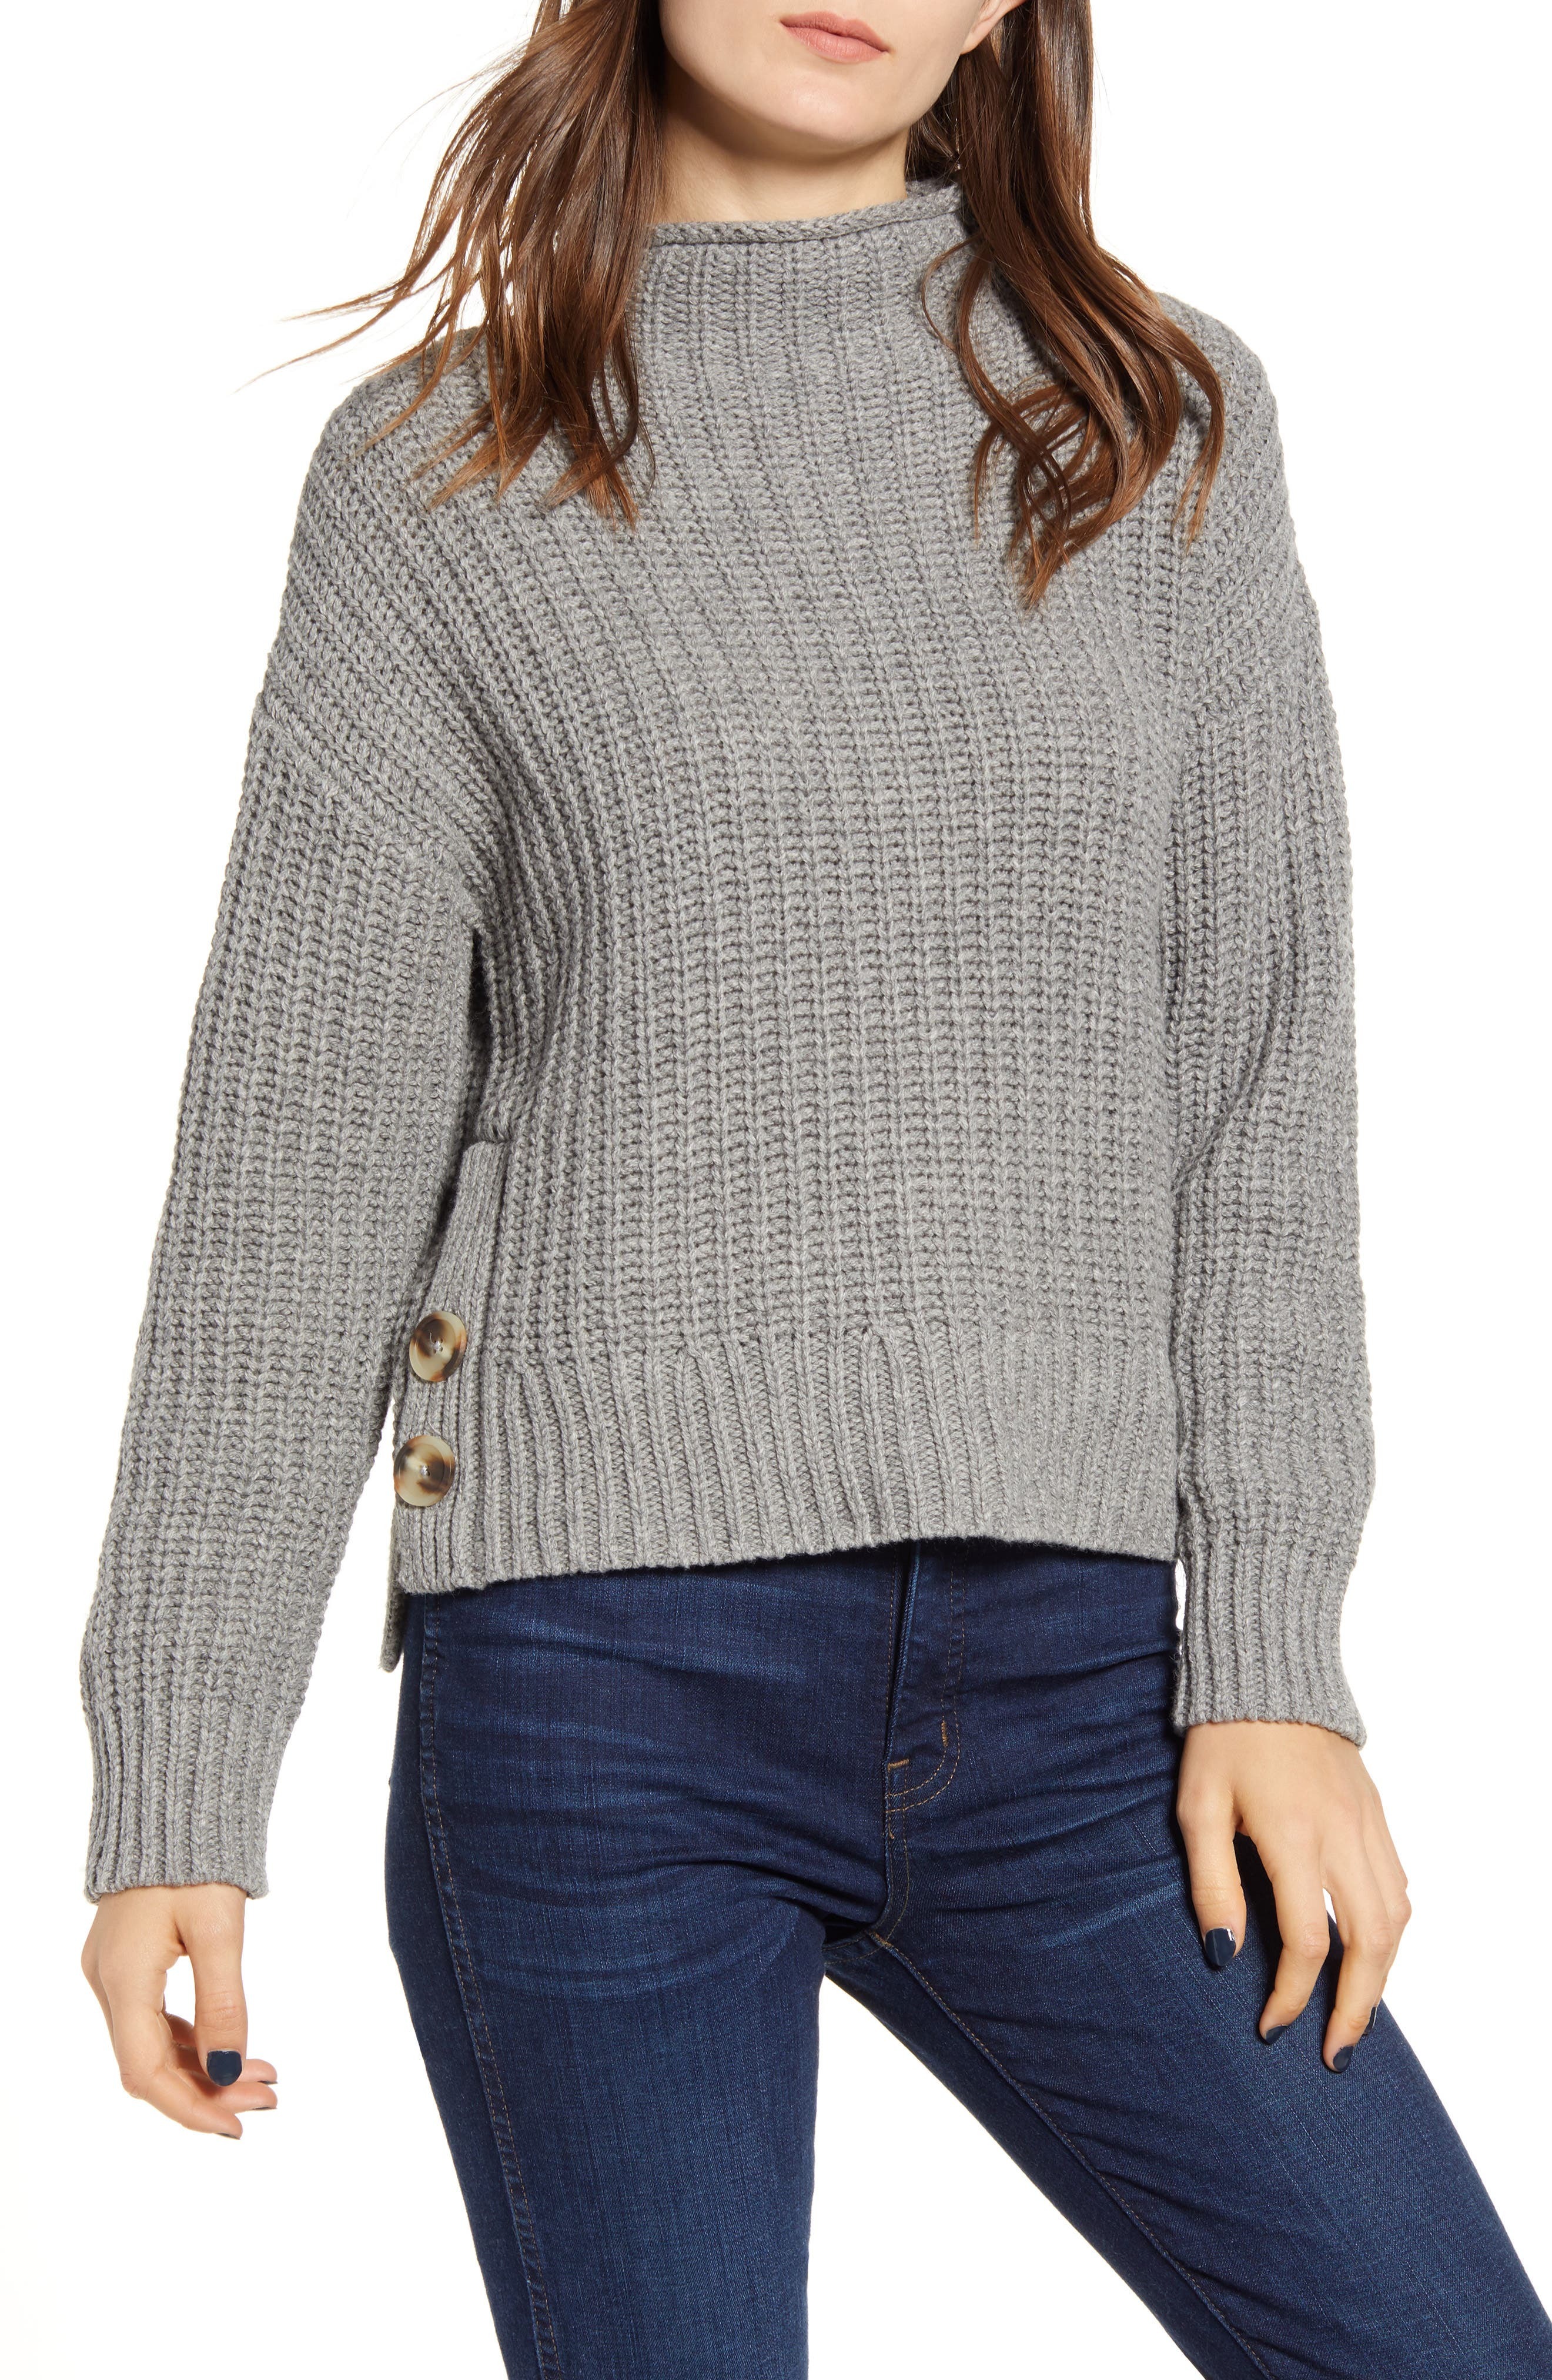 Madewell Mock Neck Side-Button Pullover Sweater (Regular & Plus Size)